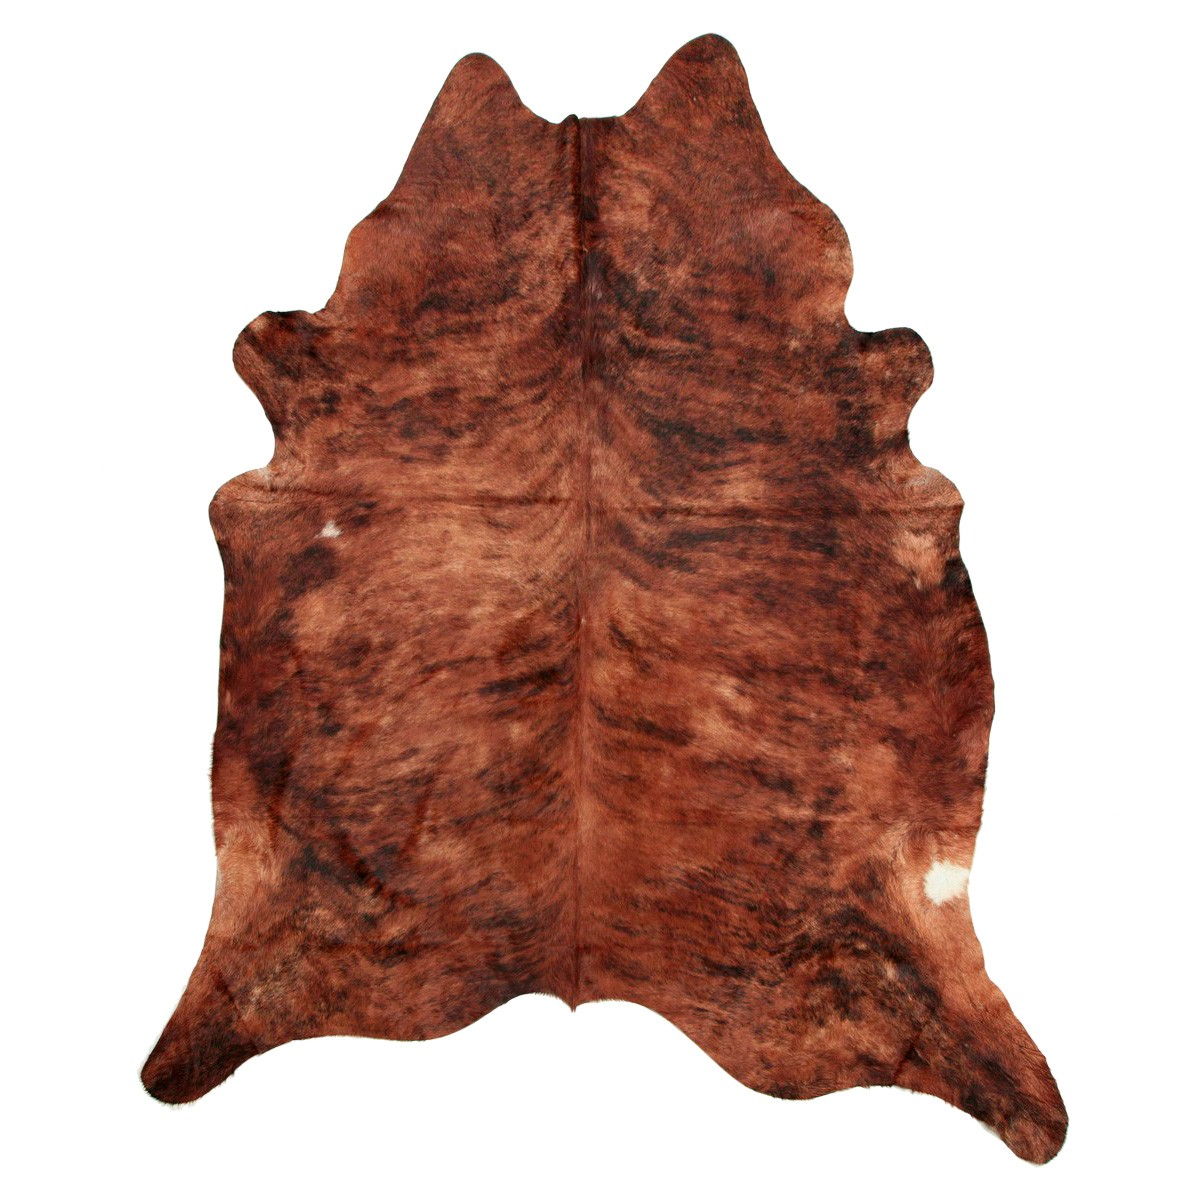 Victor 317 Brazilian Natural Cowhide Rug, 220x240cm